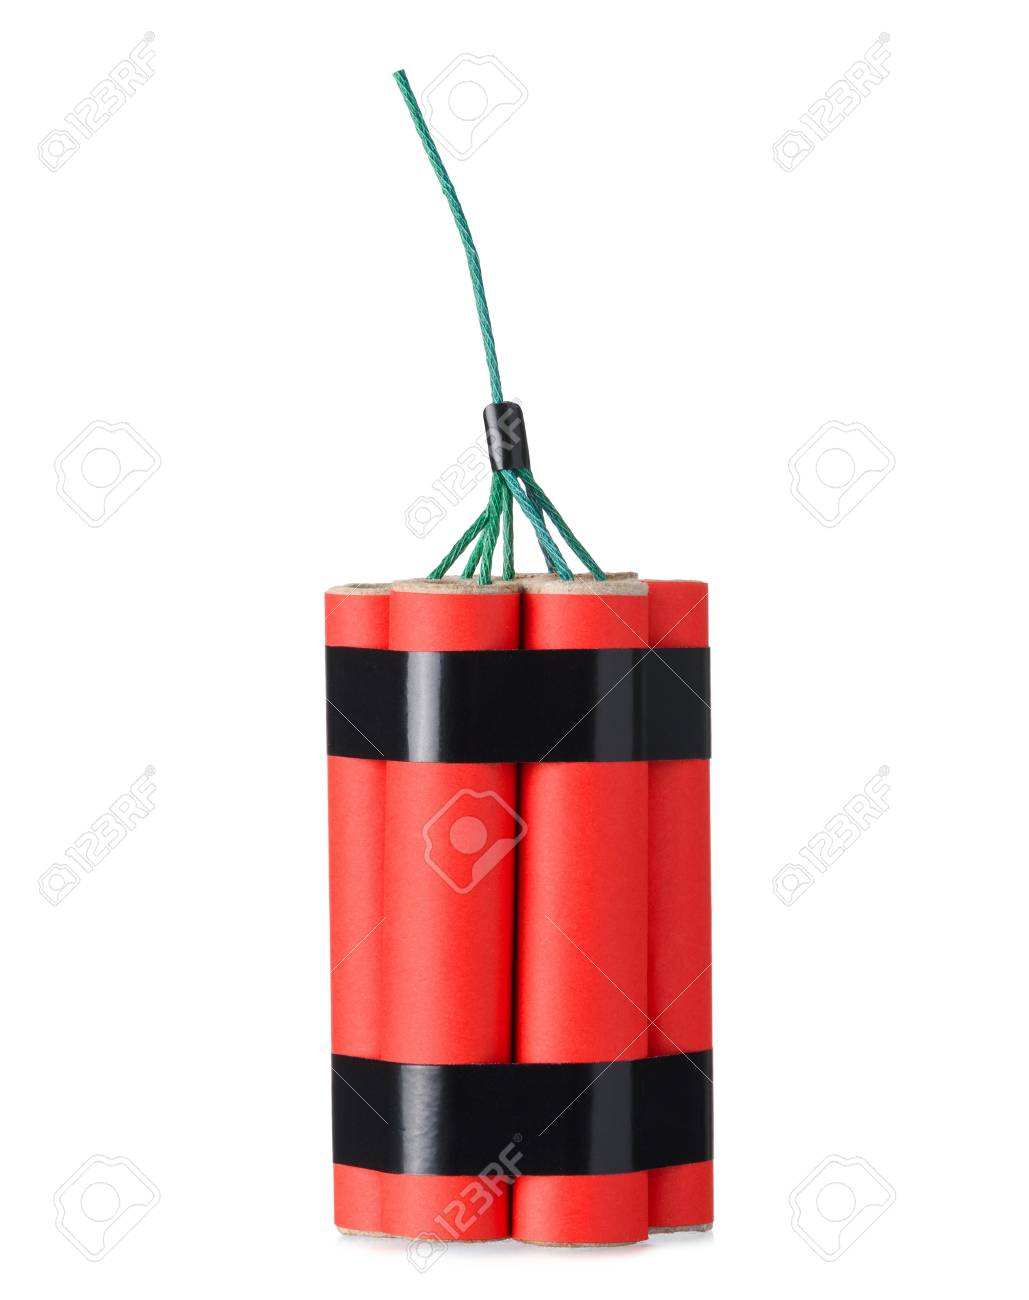 Red dynamite firecracker with fuse isolated on a white background - 119485724